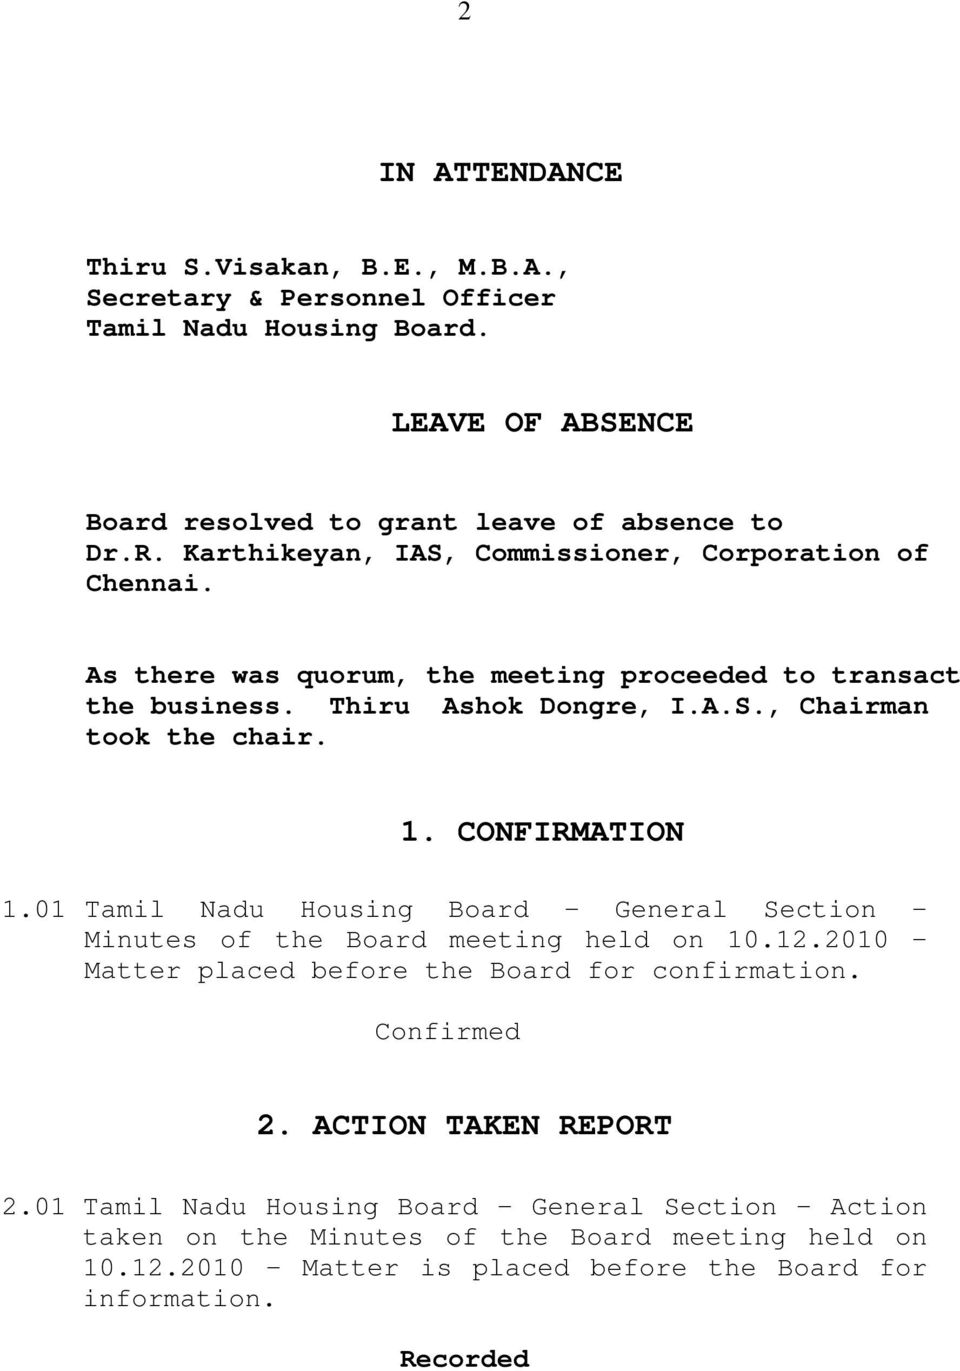 1. CONFIRMATION 1.01 Tamil Nadu Housing Board General Section Minutes of the Board meeting held on 10.12.2010 Matter placed before the Board for confirmation. Confirmed 2.